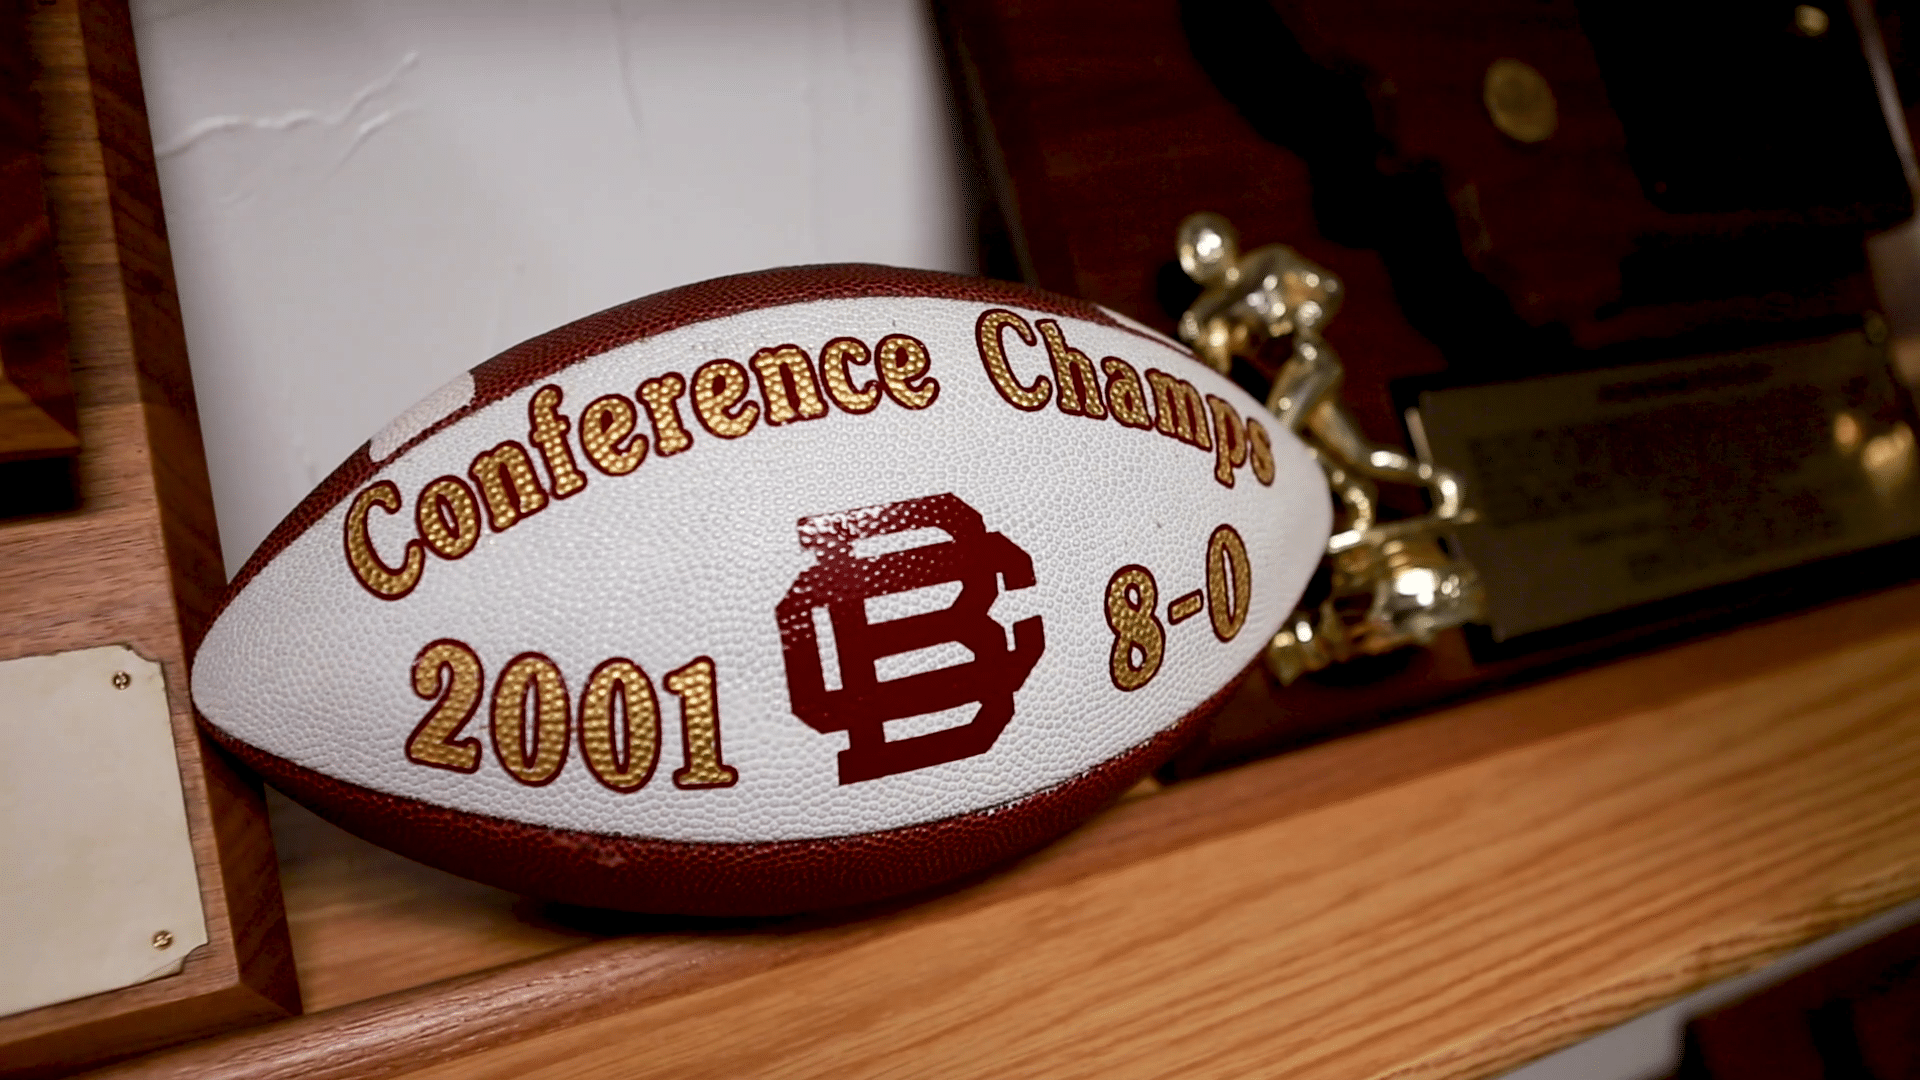 Conference Champs commemorative football, 2001, 8-0.